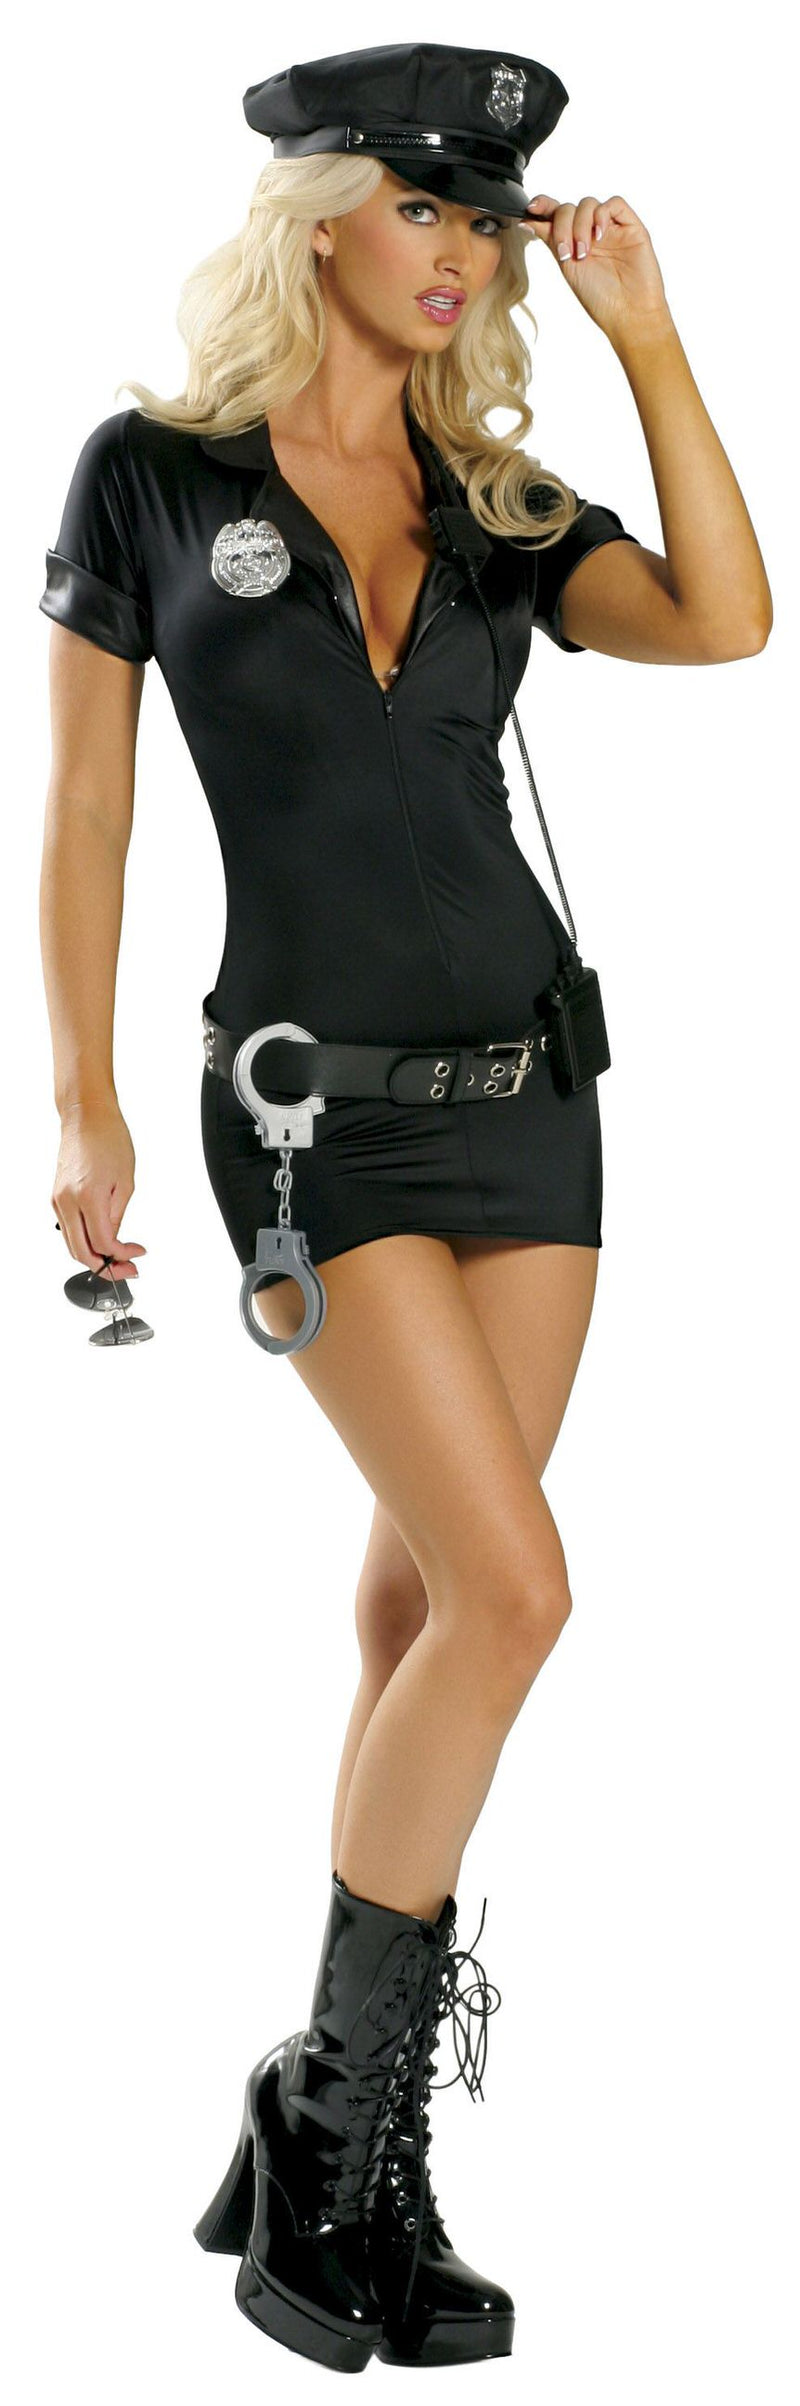 7-Piece-Police-Officer-Cop-Mini-Dress-w/-Accessories-Party-Costume